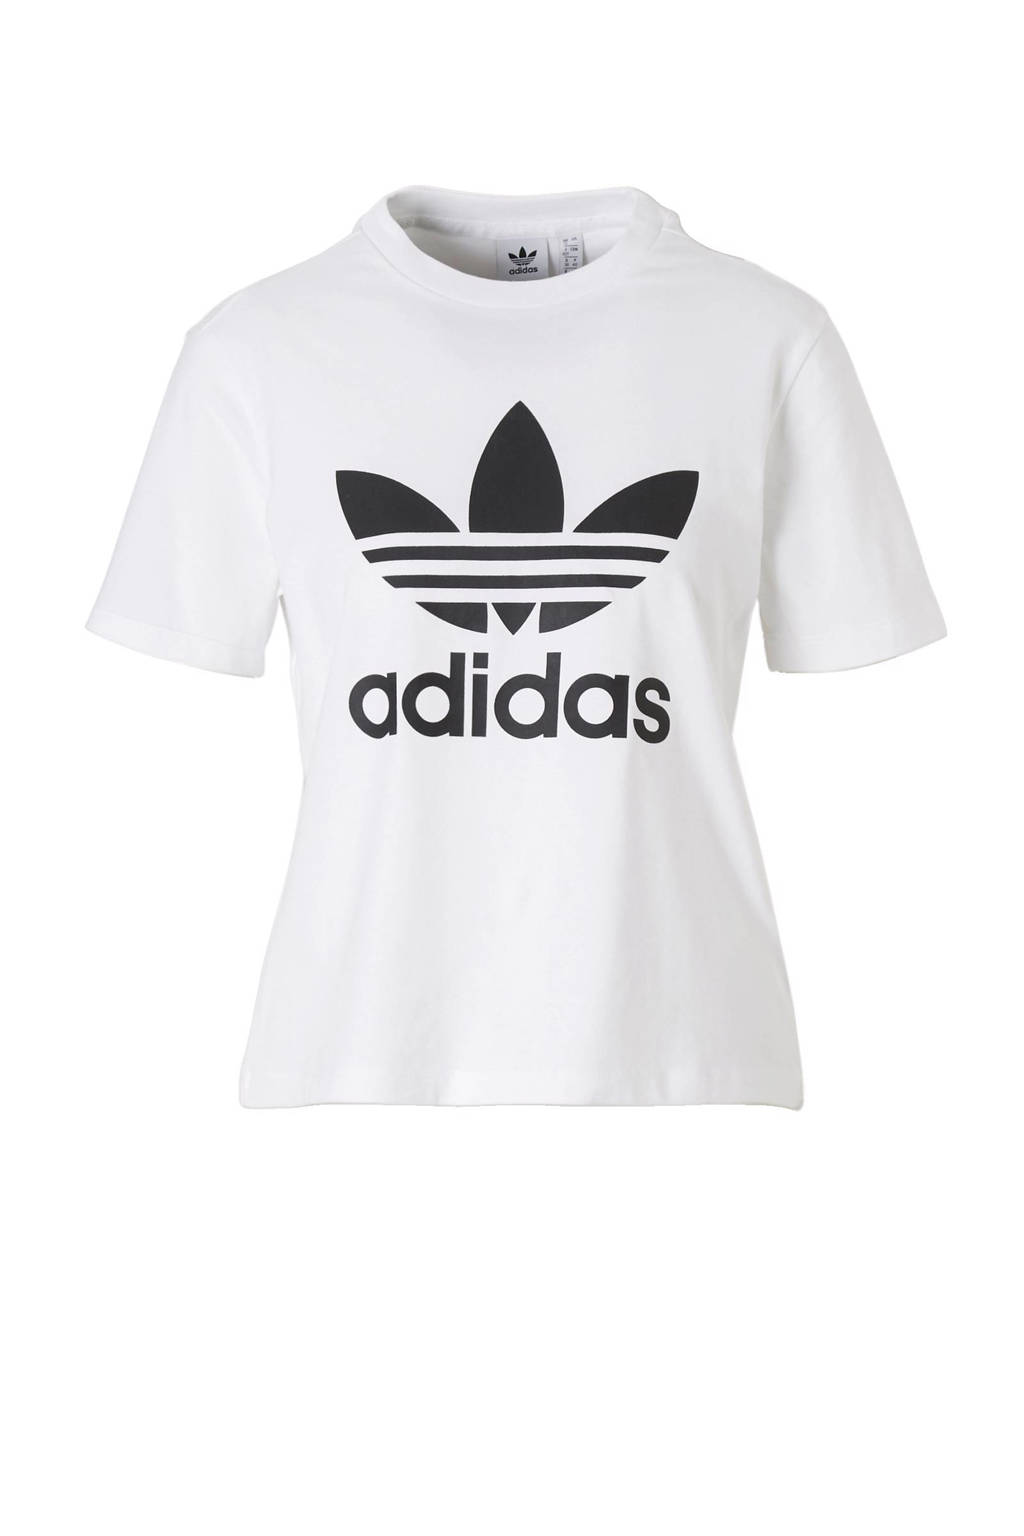 20b1a81b534 adidas originals T-shirt, Wit/zwart, Dames